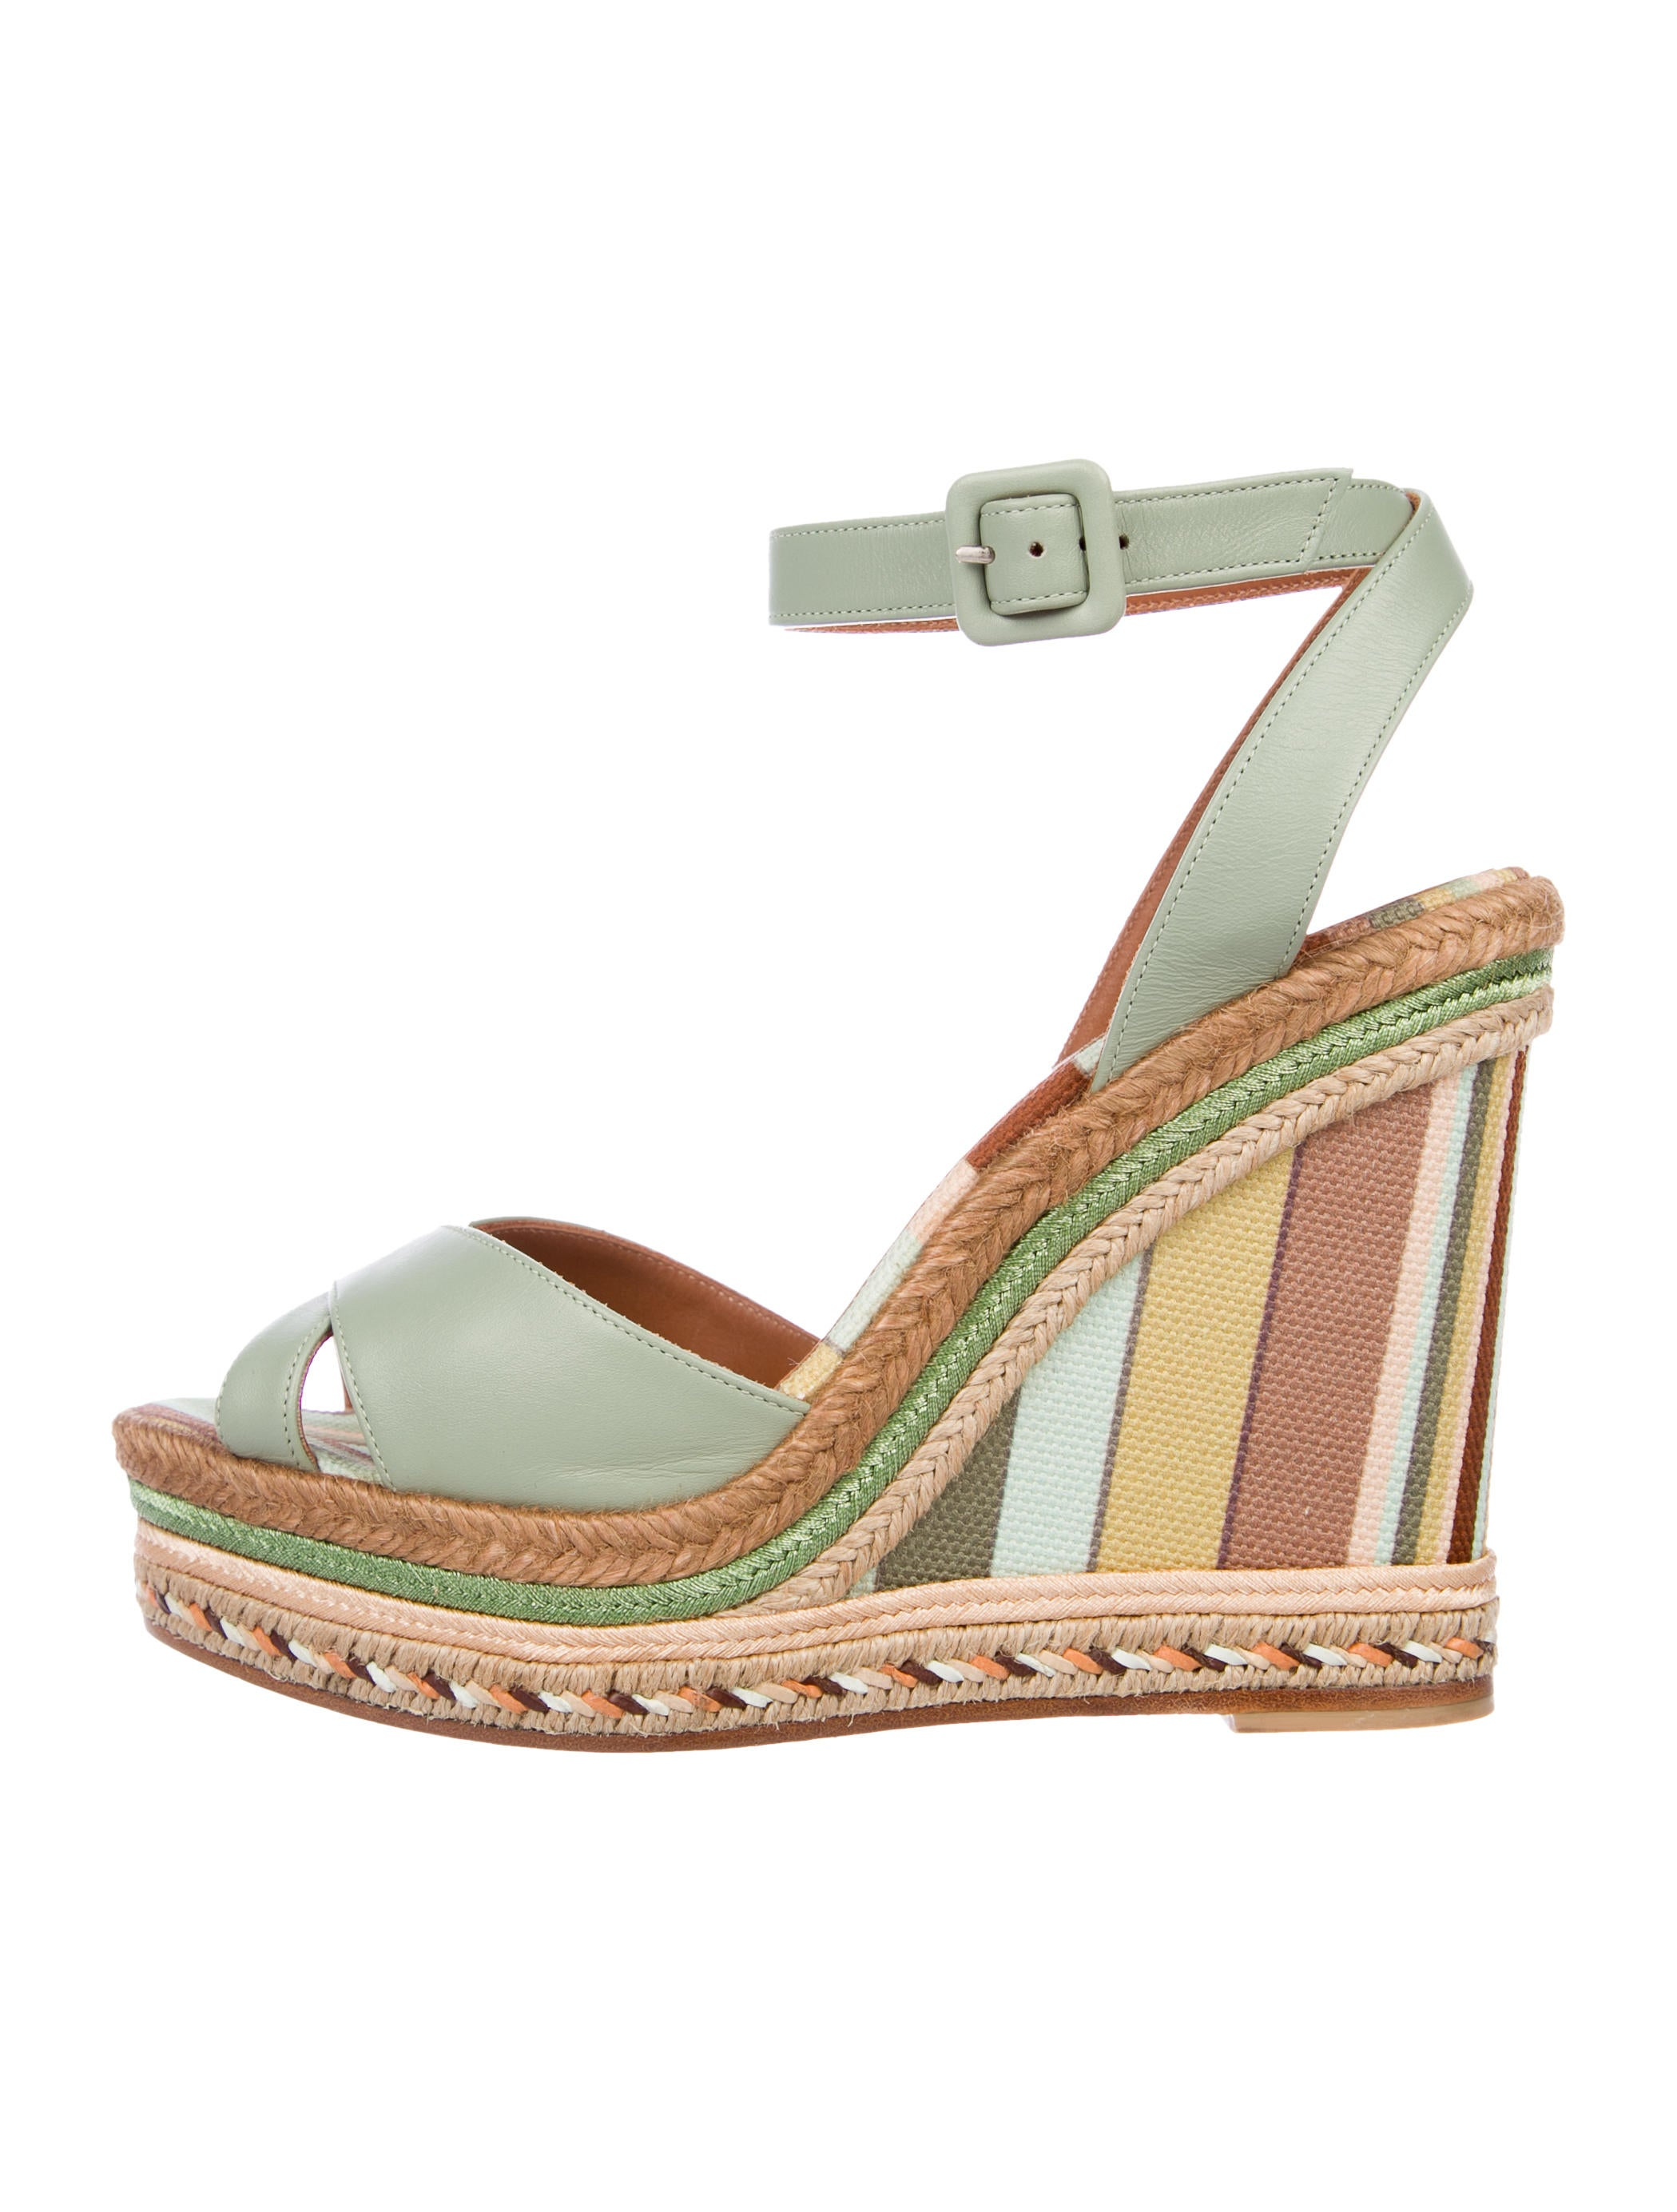 5642ed2e293 Valentino Native Couture 1975 Espadrille Wedge Sandals - Shoes ...